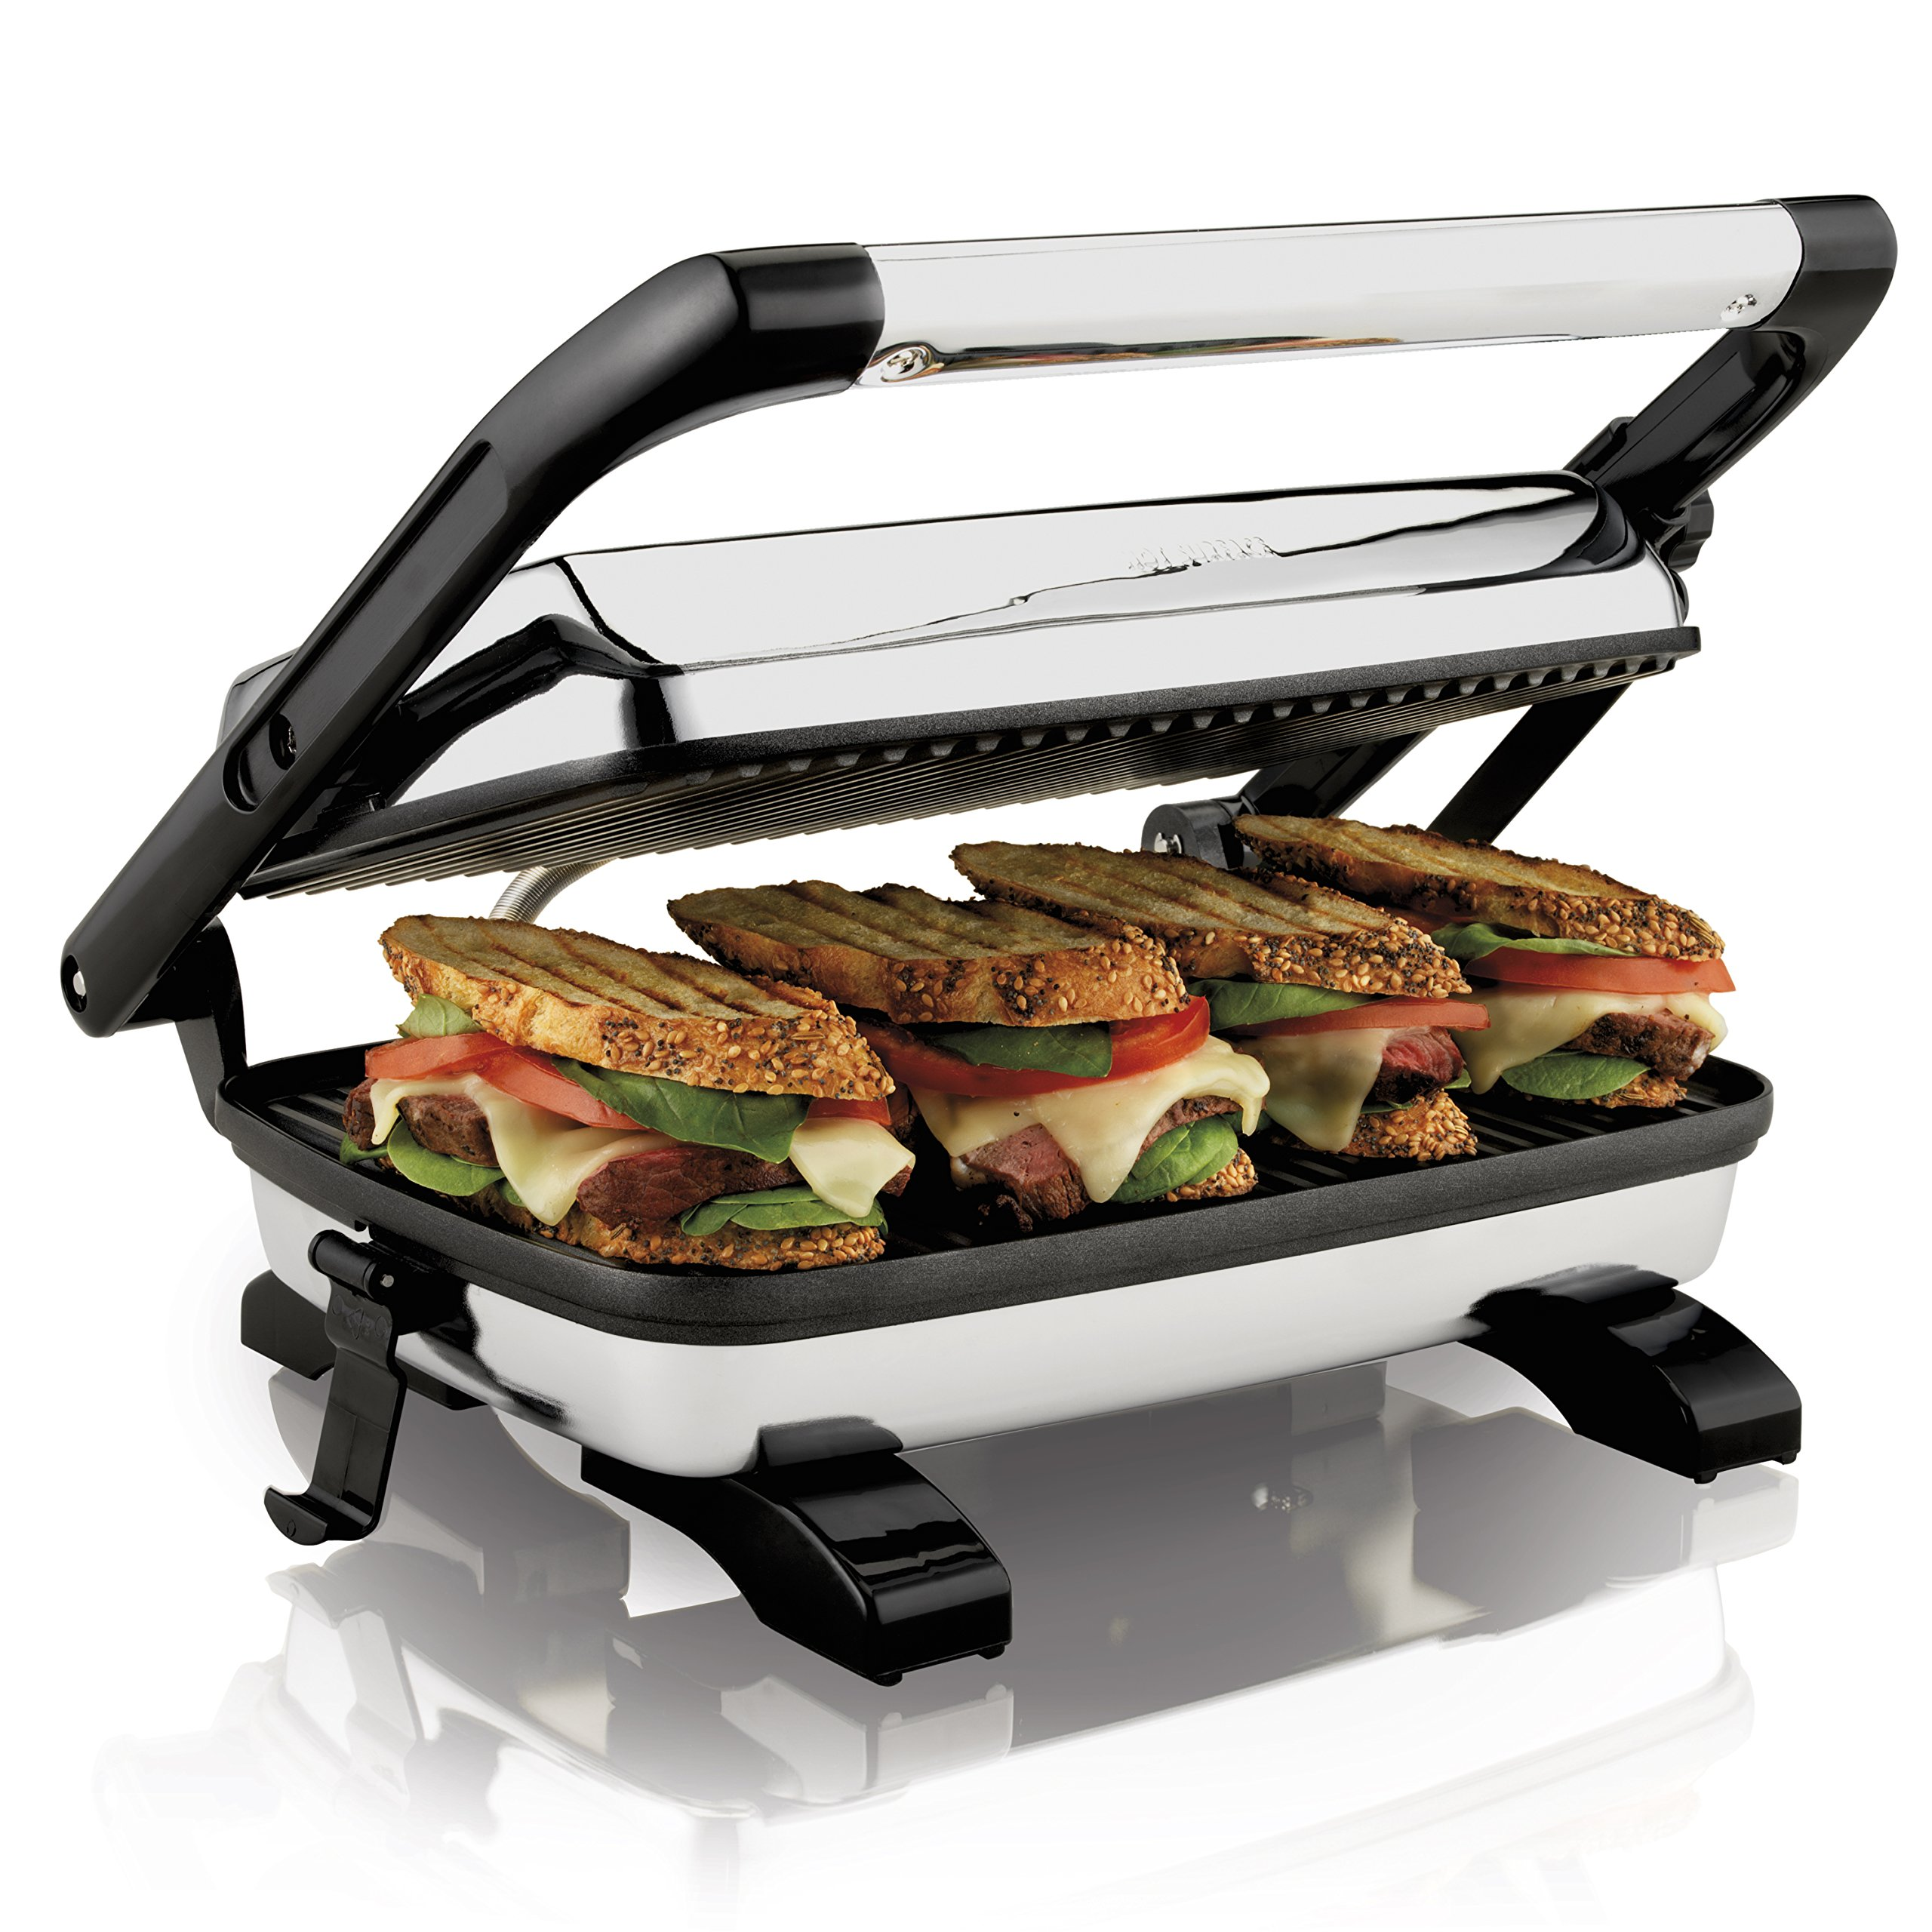 Proctor Silex 25453A Panini Press Gourmet Sandwich Maker by Proctor Silex